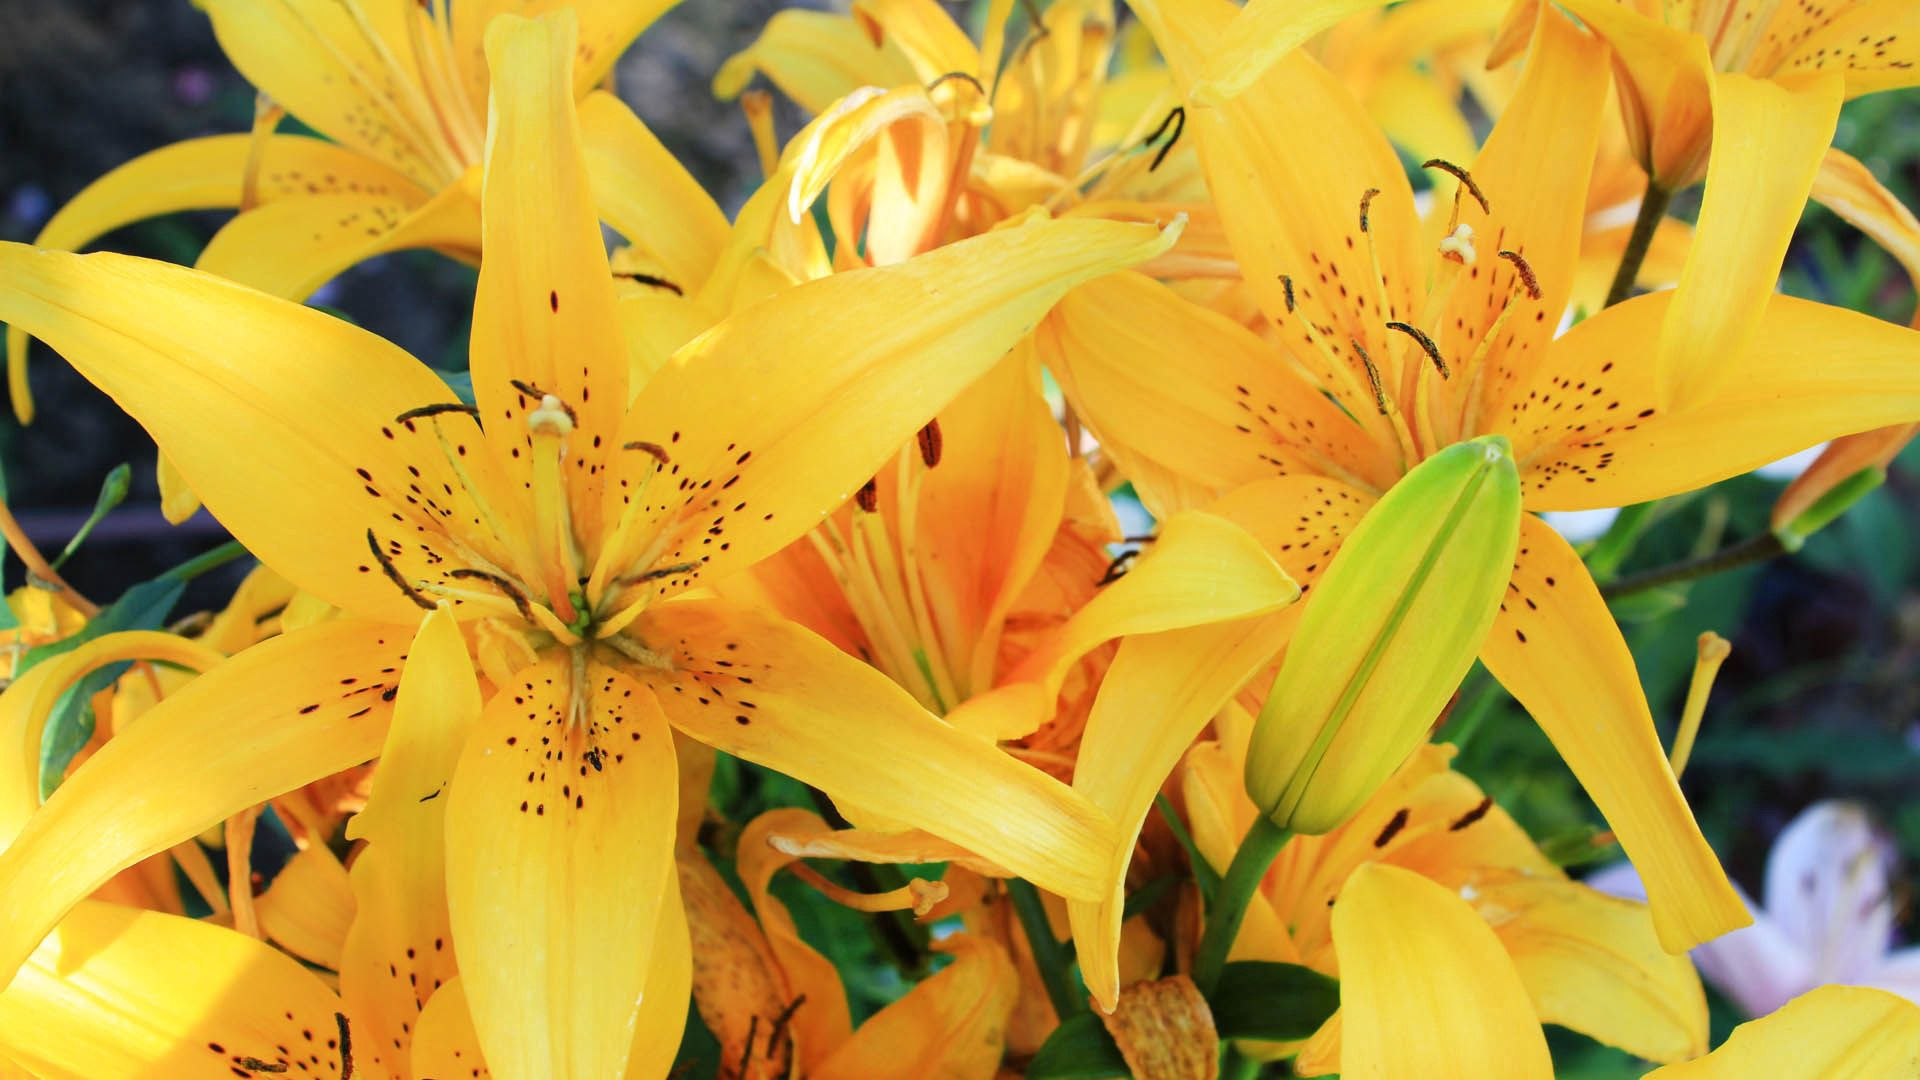 131572 download wallpaper Lilies, Macro, Bud, Striped screensavers and pictures for free